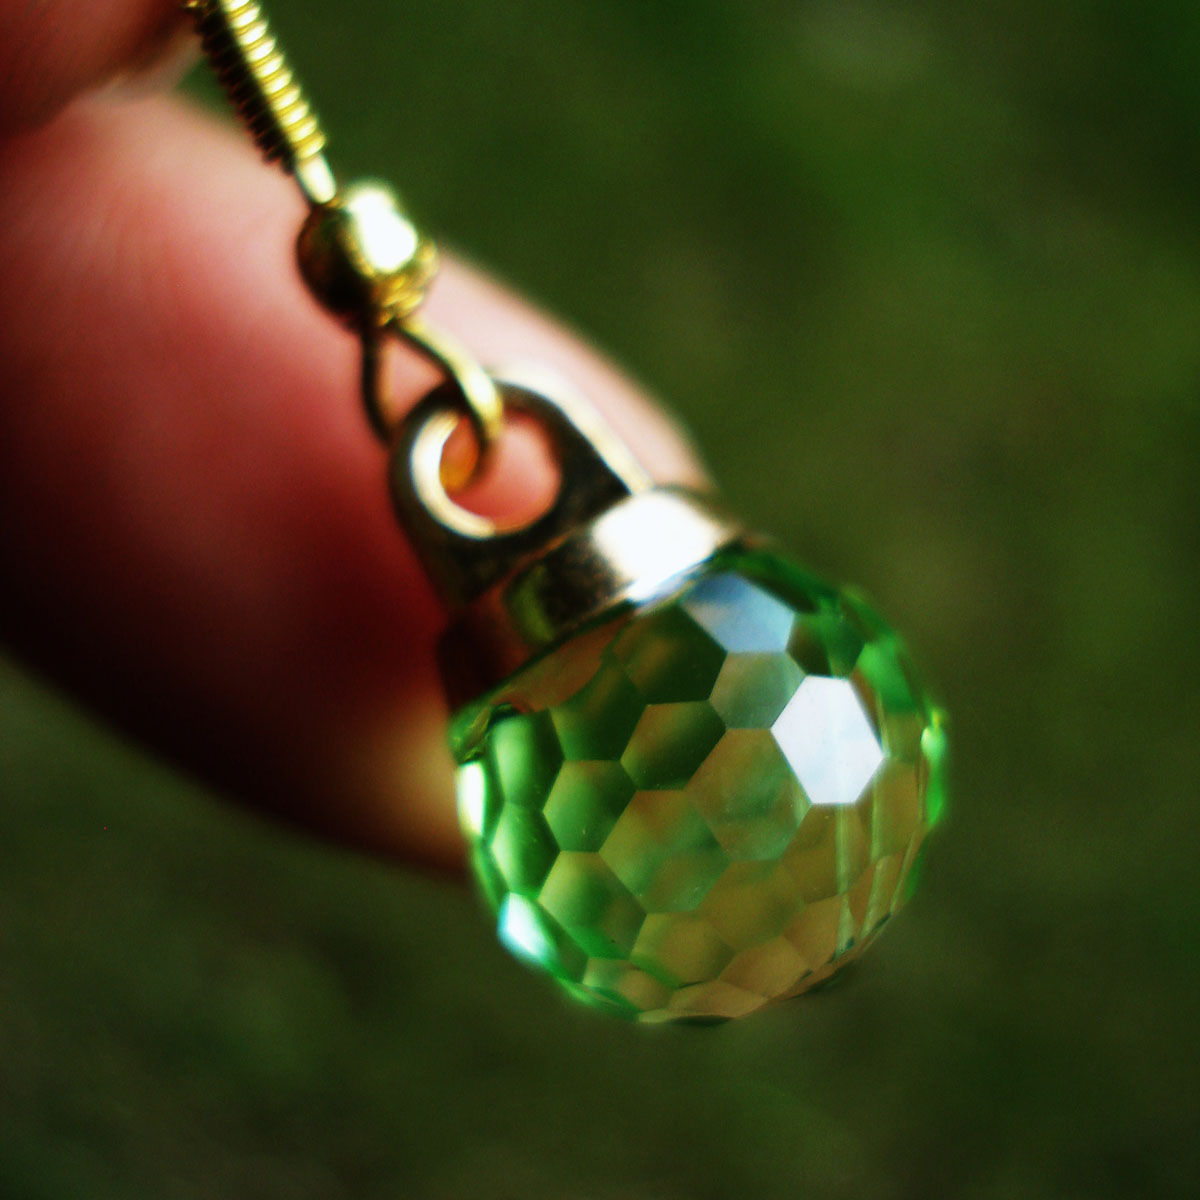 green-particle_edited-1